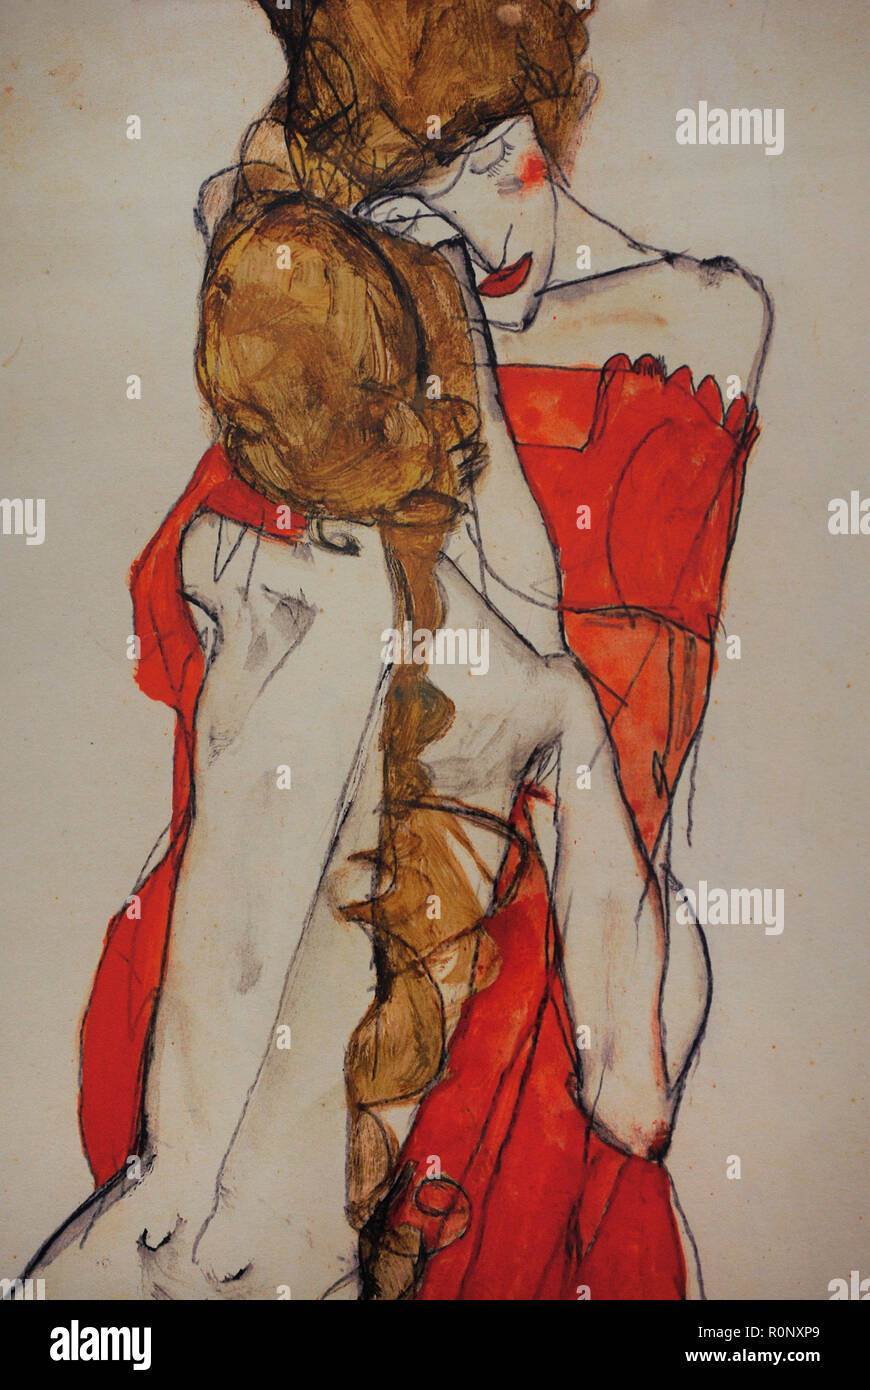 Egon Schiele (Tulln, 1890-Vienna, 1918). Austrian Expressionist painter. Mother and Daughter, 1913. Pencil and gouache on paper. Leopold Museum. Vienna, Austria. - Stock Image